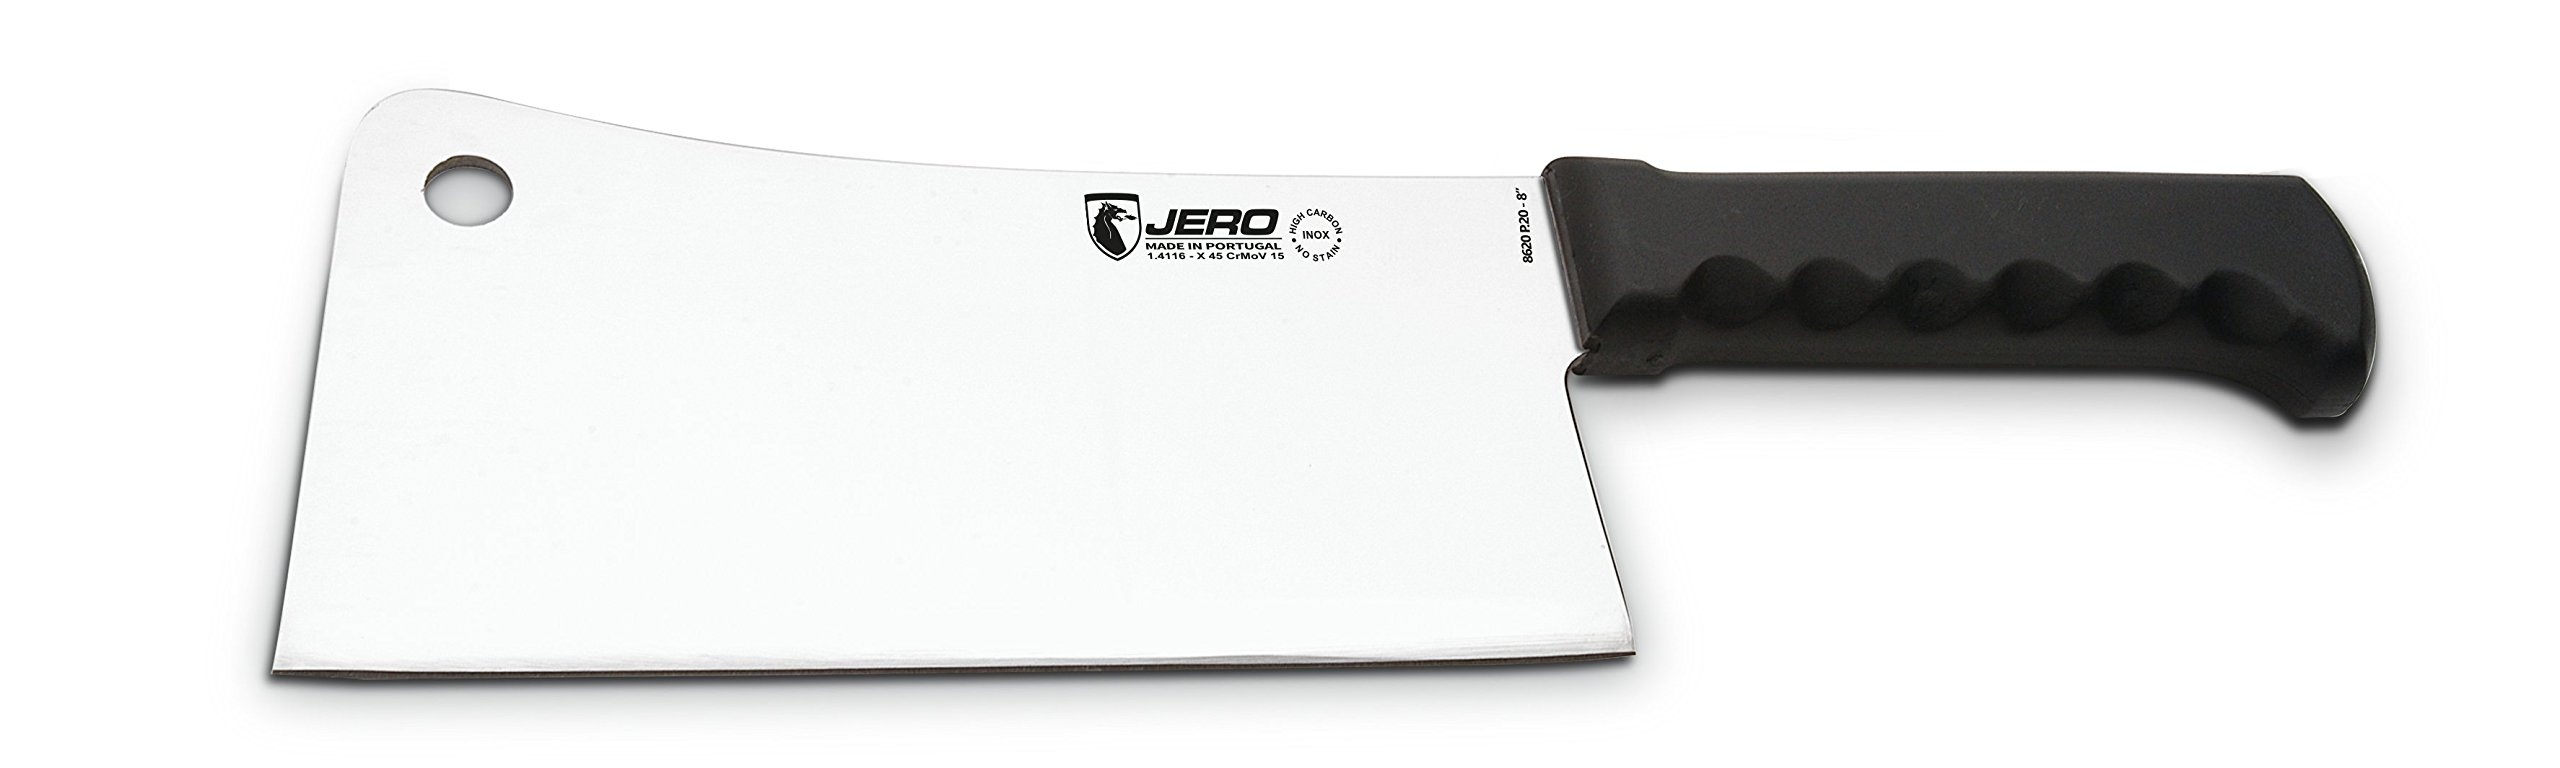 Jero Atlantic 8'' Blade Heavy-Duty Cleaver Atlantic Series German Stainless Steel with Easy Grip Poly Handle, 2 lb.